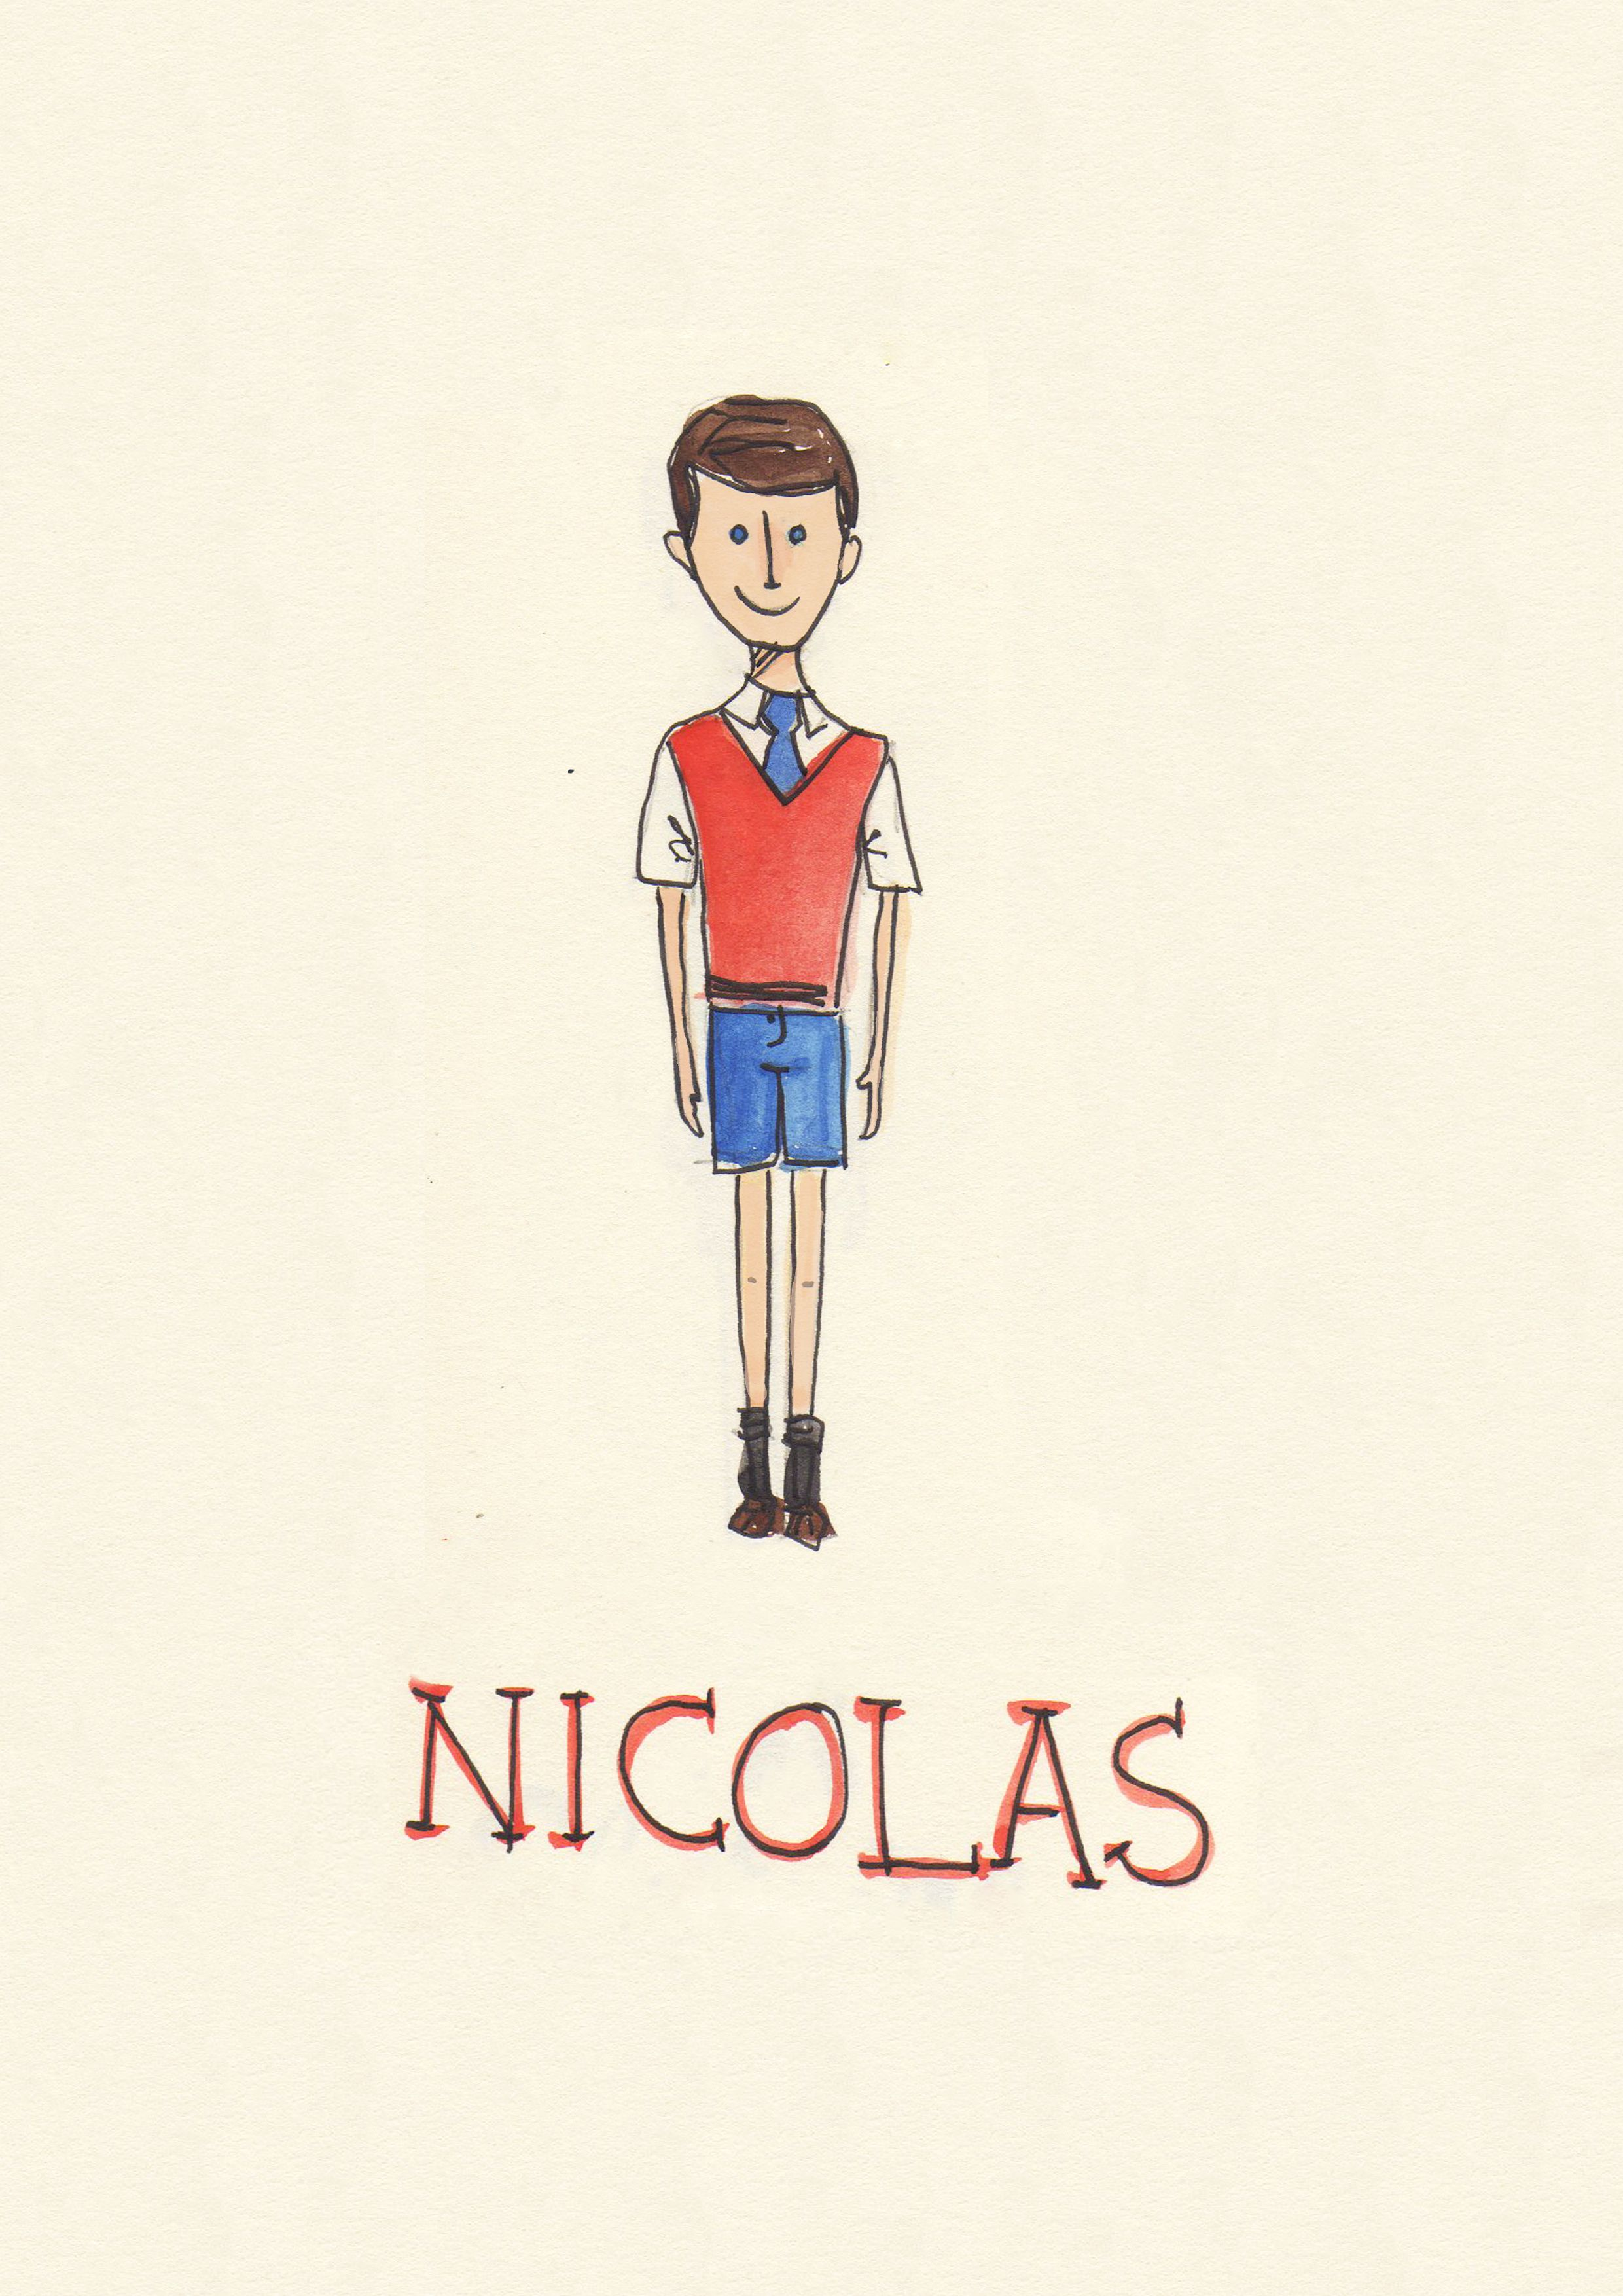 nicolas, from the movie 'le petit nicolas'  (illustration: Letícia Naves)